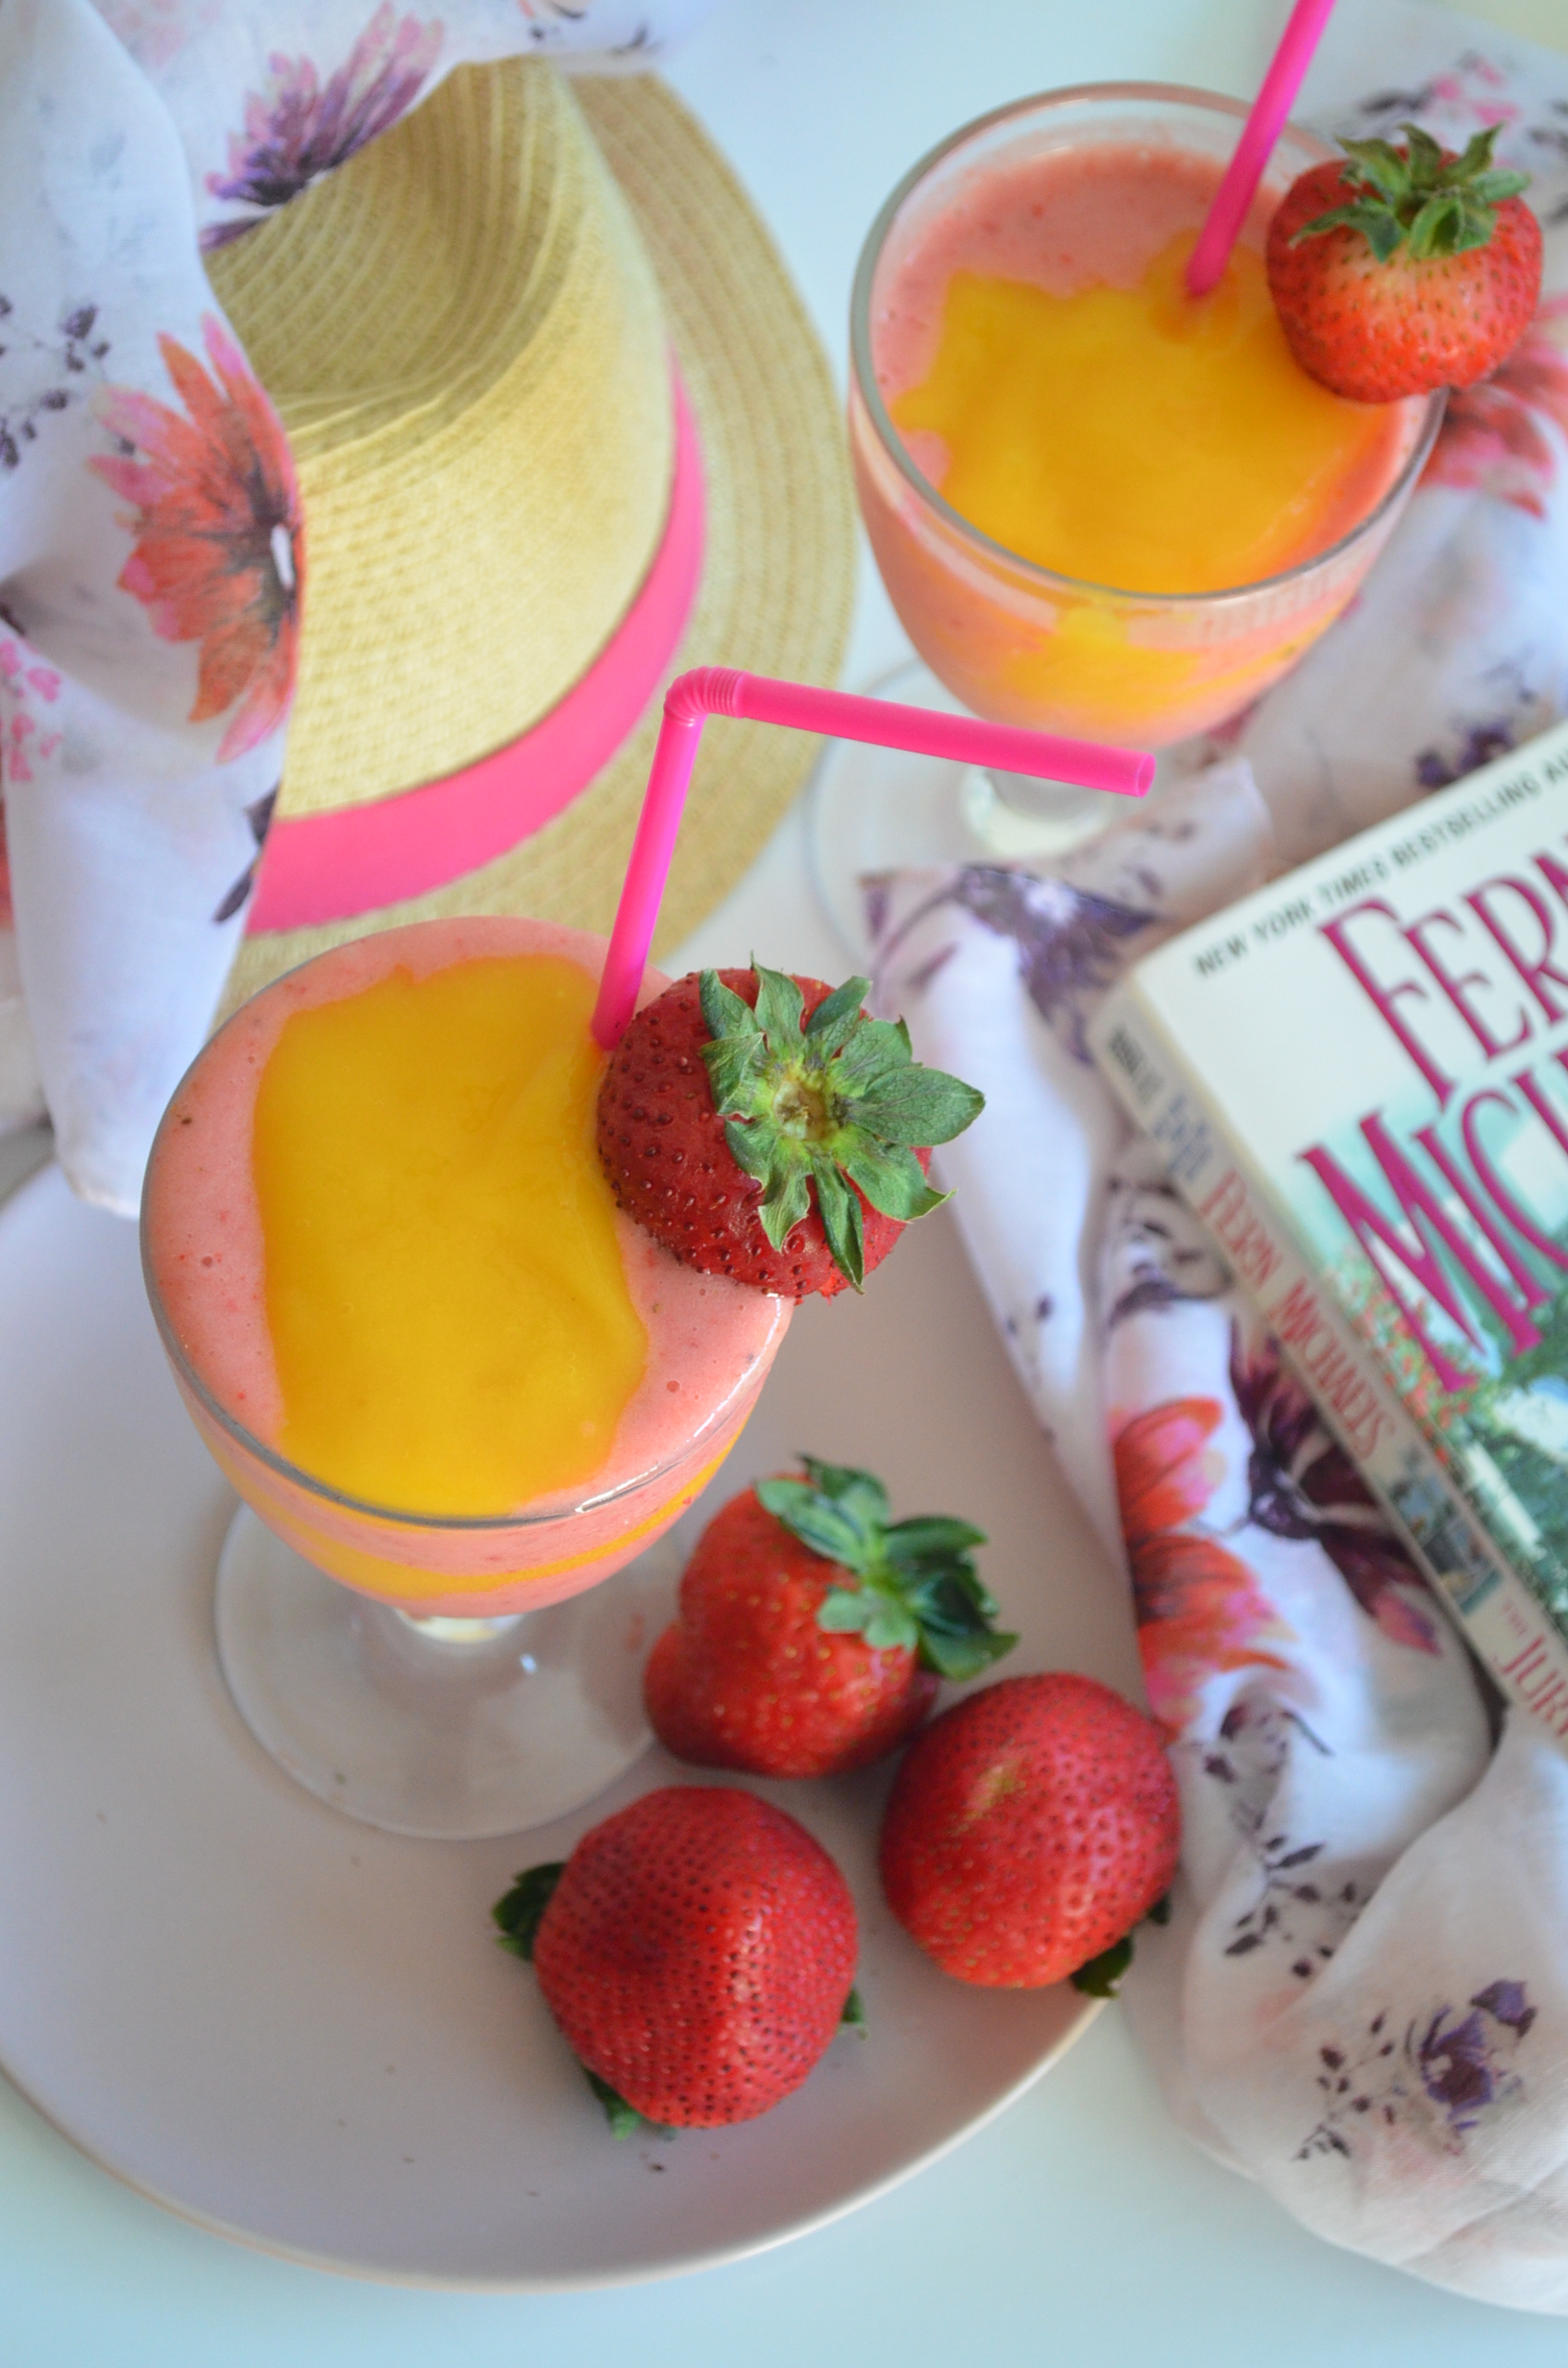 Strawberry Mango Slushie